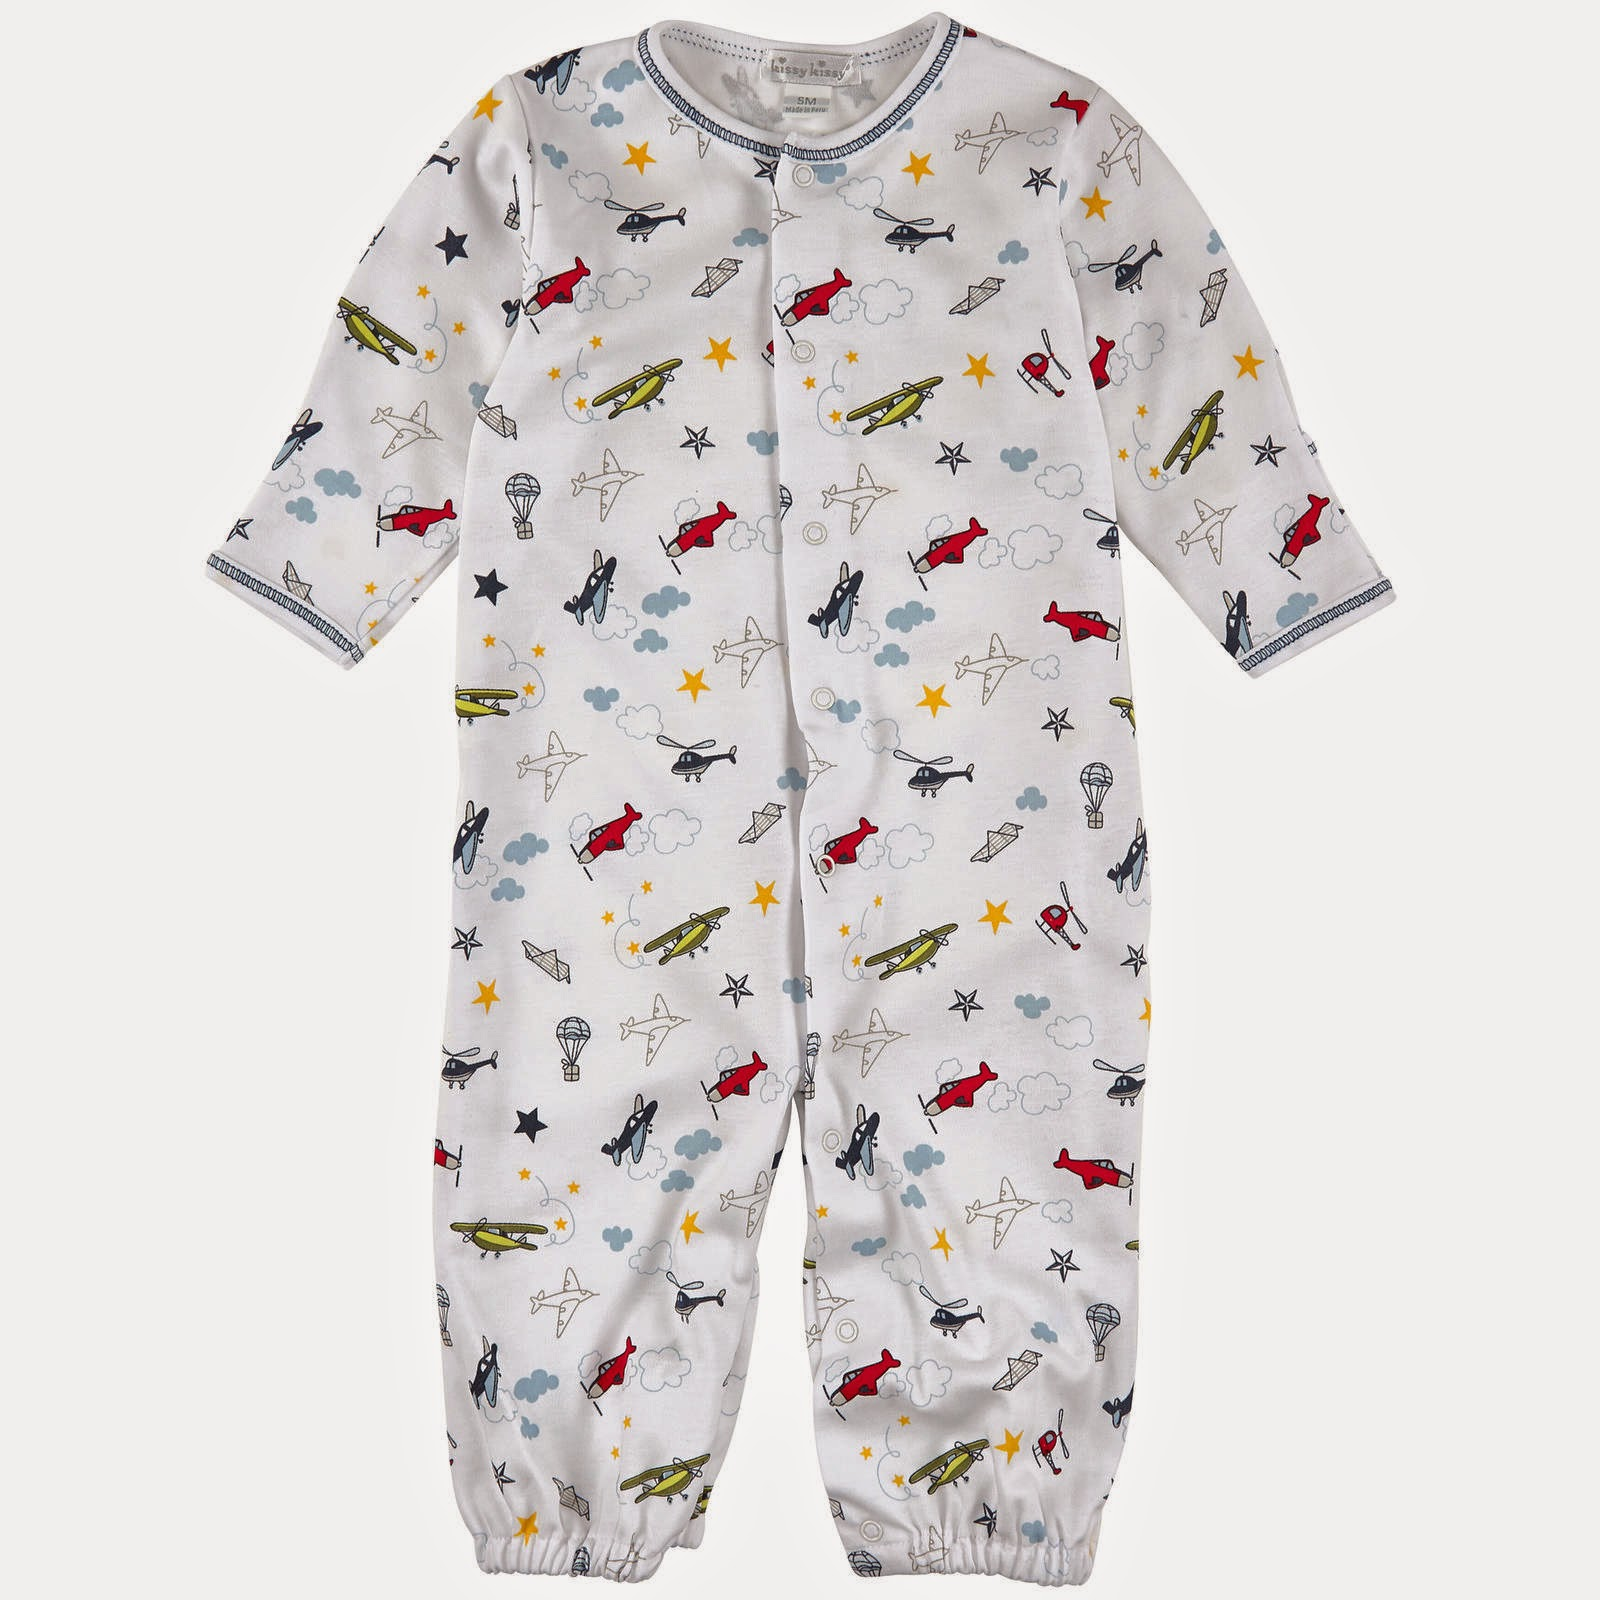 The Adventure of Parenthood kids clothing